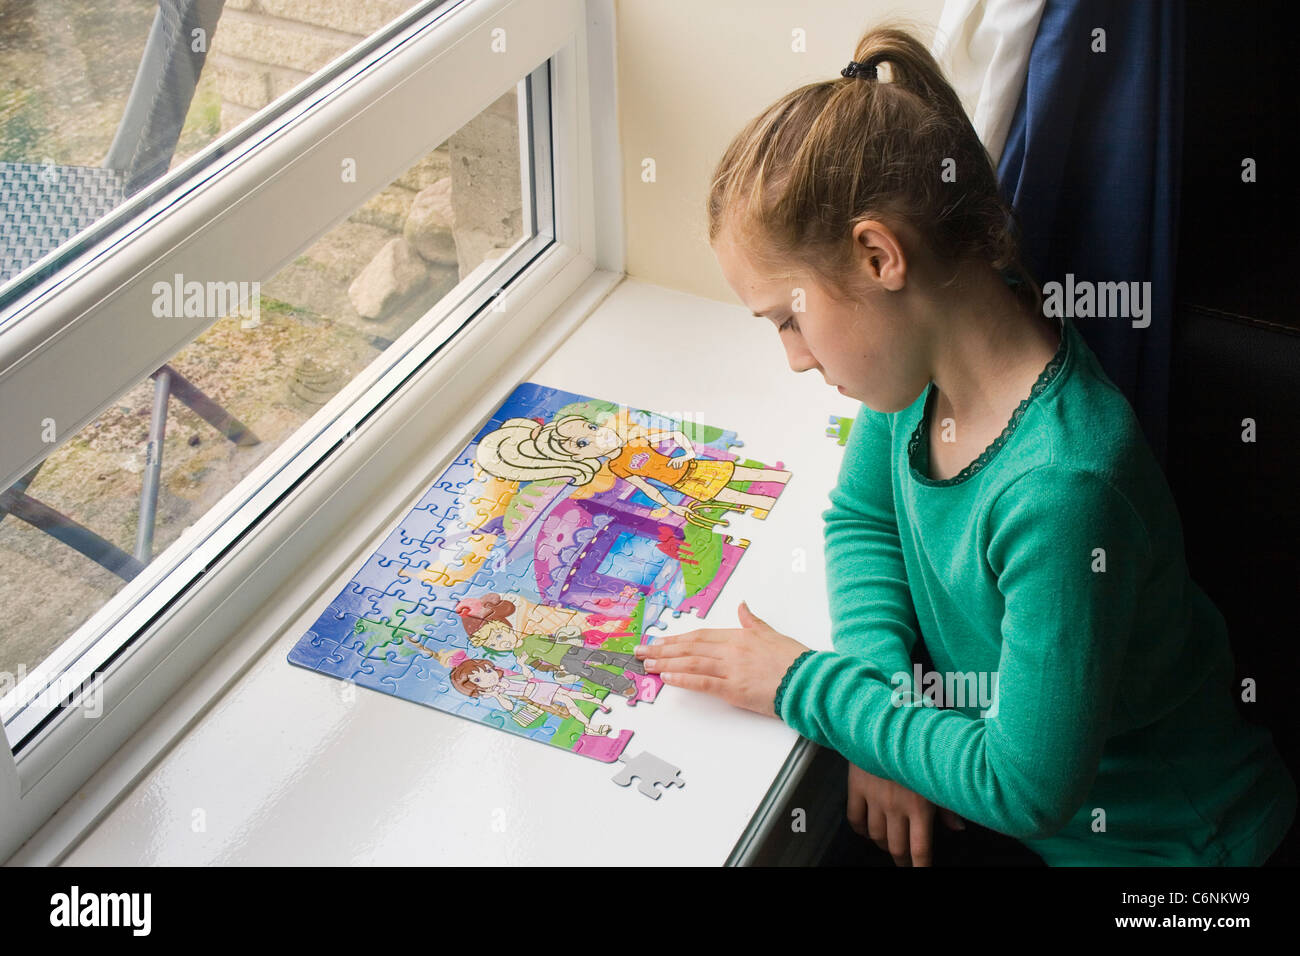 Eleven year old girl doing a jigsaw puzzle. - Stock Image